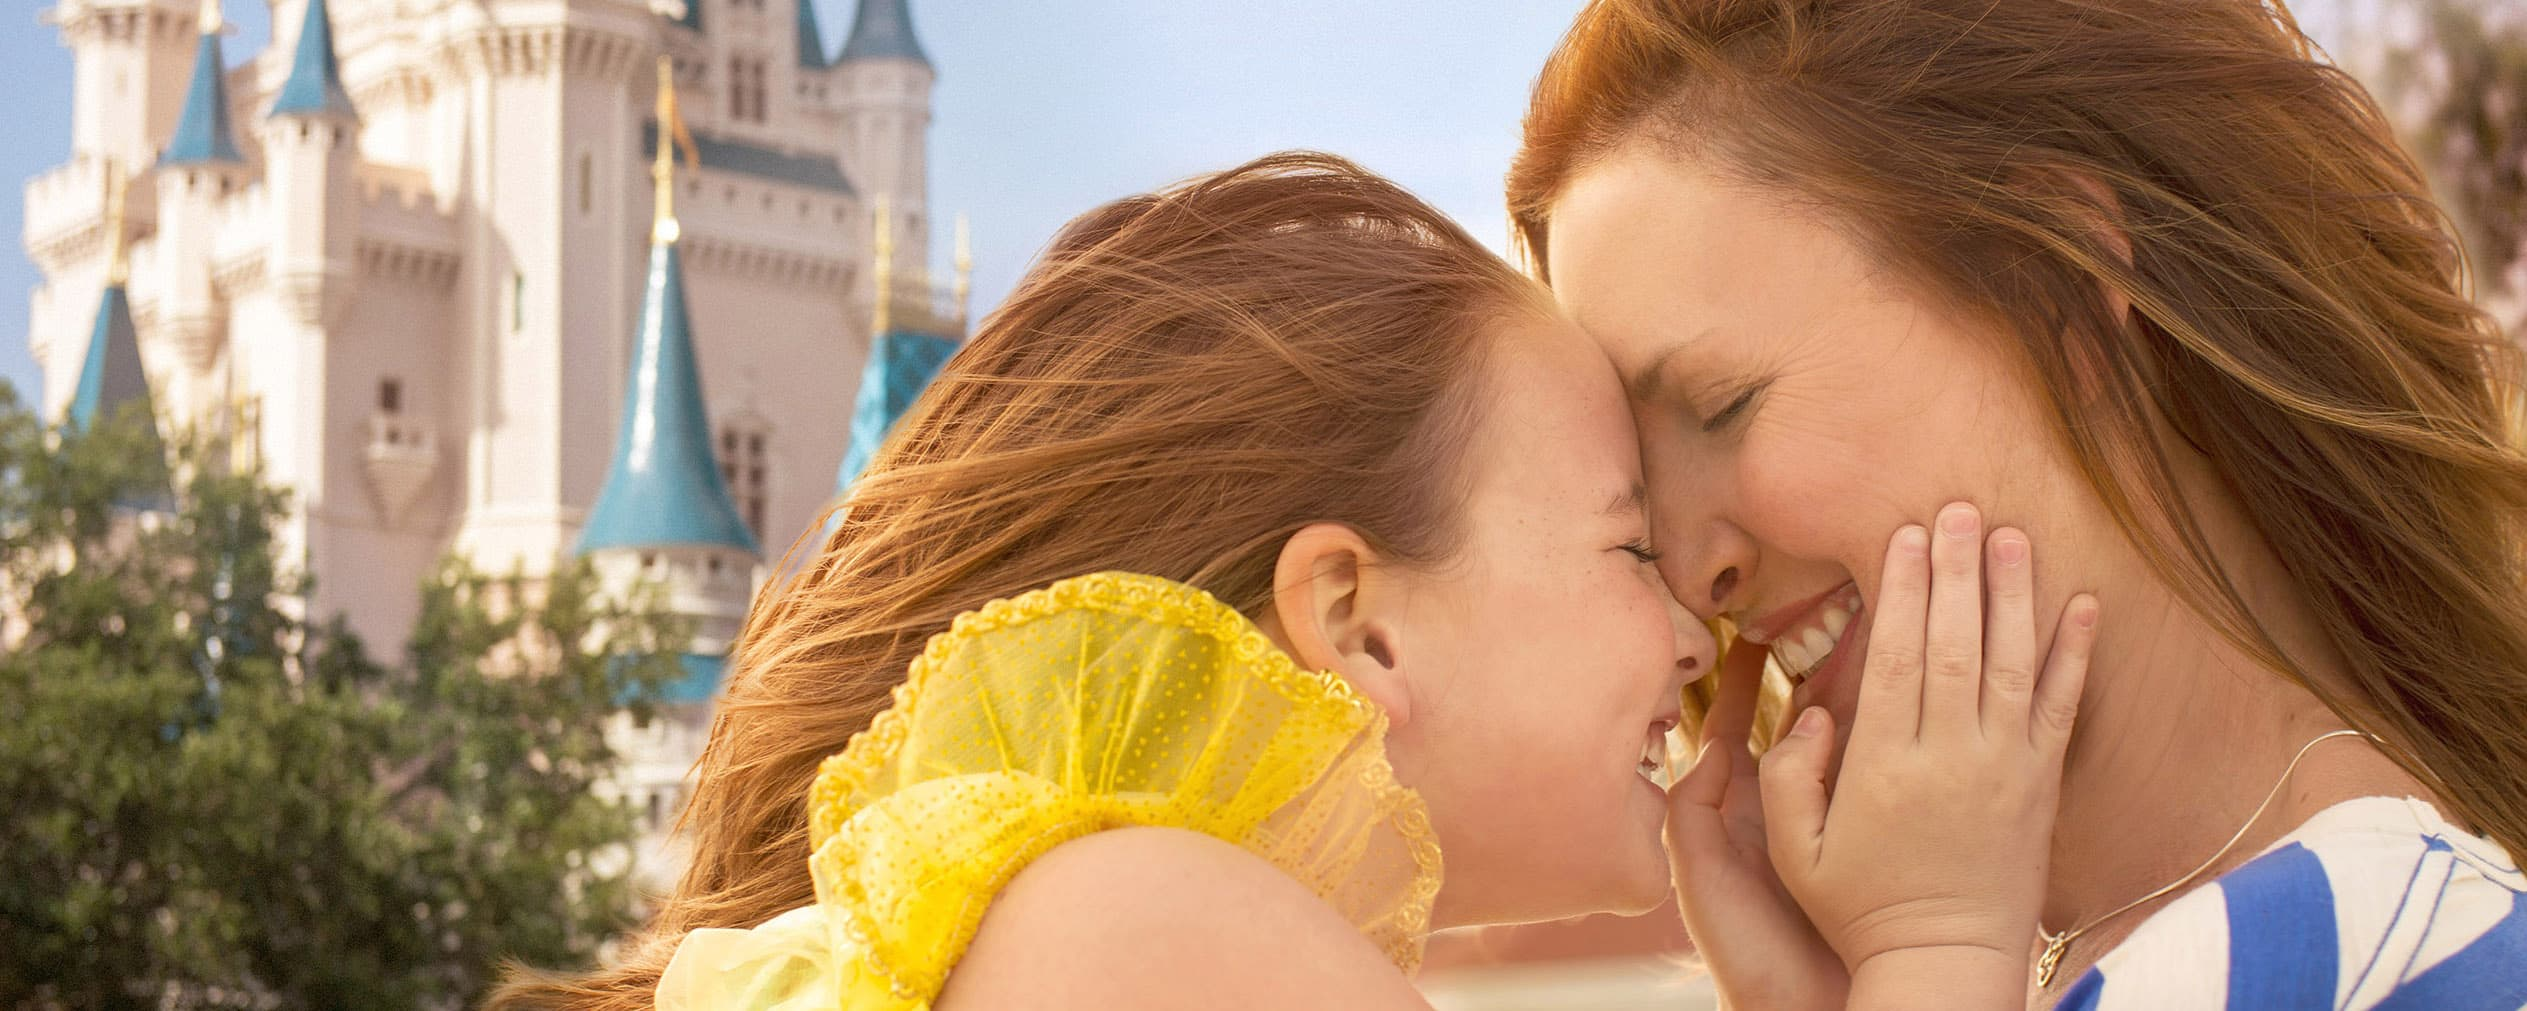 A mother and daughter sharing a warm embrace in front of Cinderella Castle at Magic Kingdom park